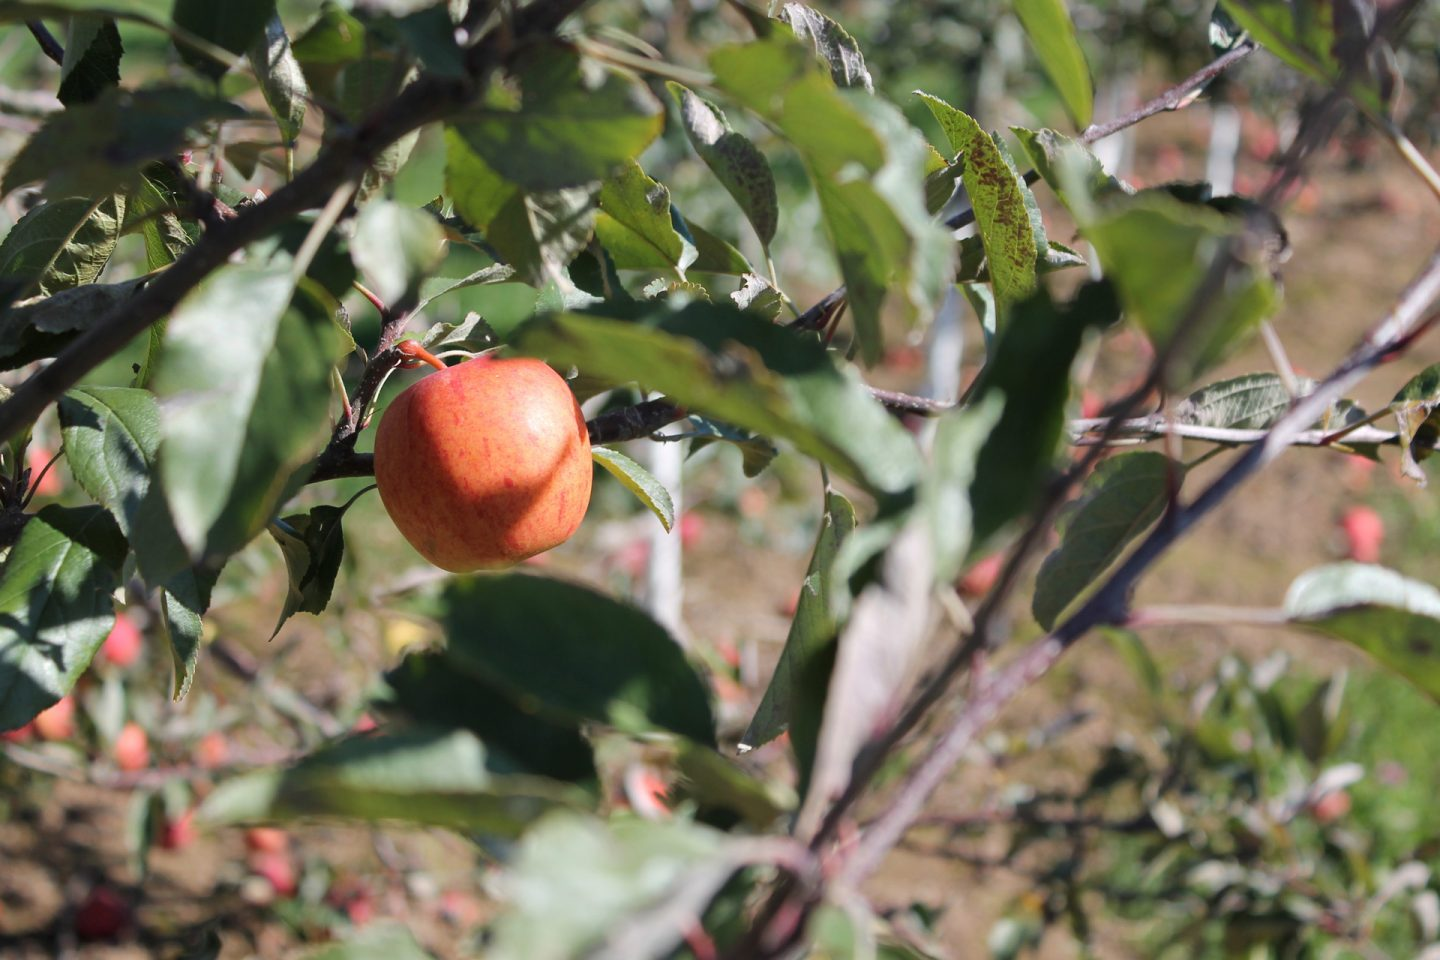 Brantview Apples and Cider Farm